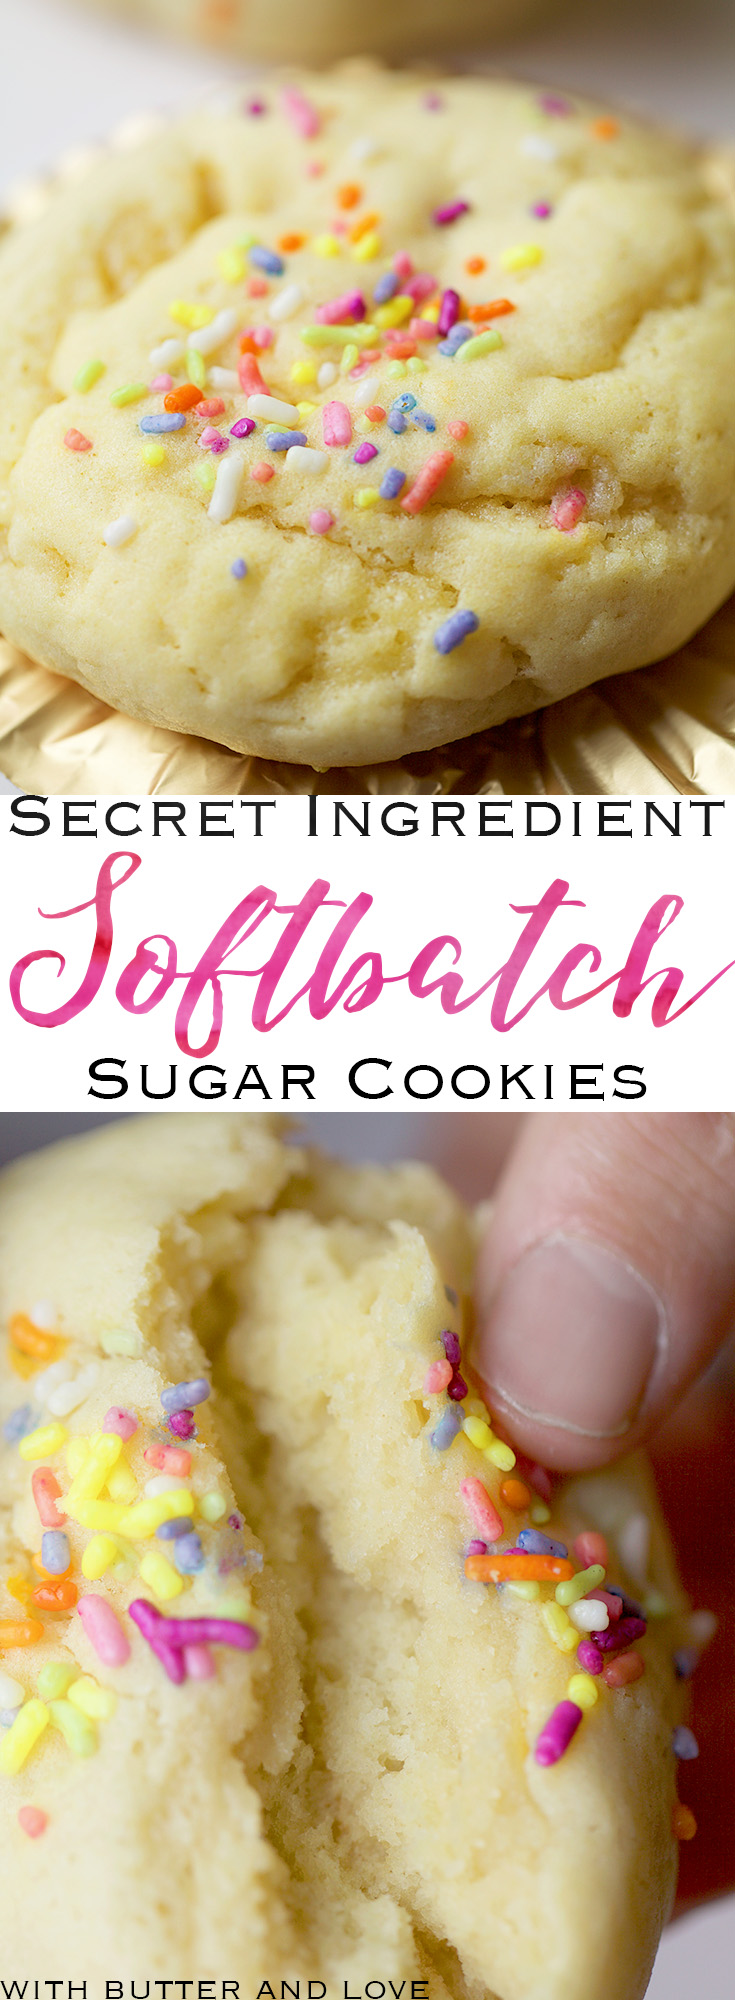 Secret Ingredient Softbatch Sugar Cookies || Ditch the highly refined vegetable oils for this secret ingredient that yields the same pillowy, softbatch sugar cookies that everyone loves! You will use this recipe over and over again! || www.withbutterandlove.com